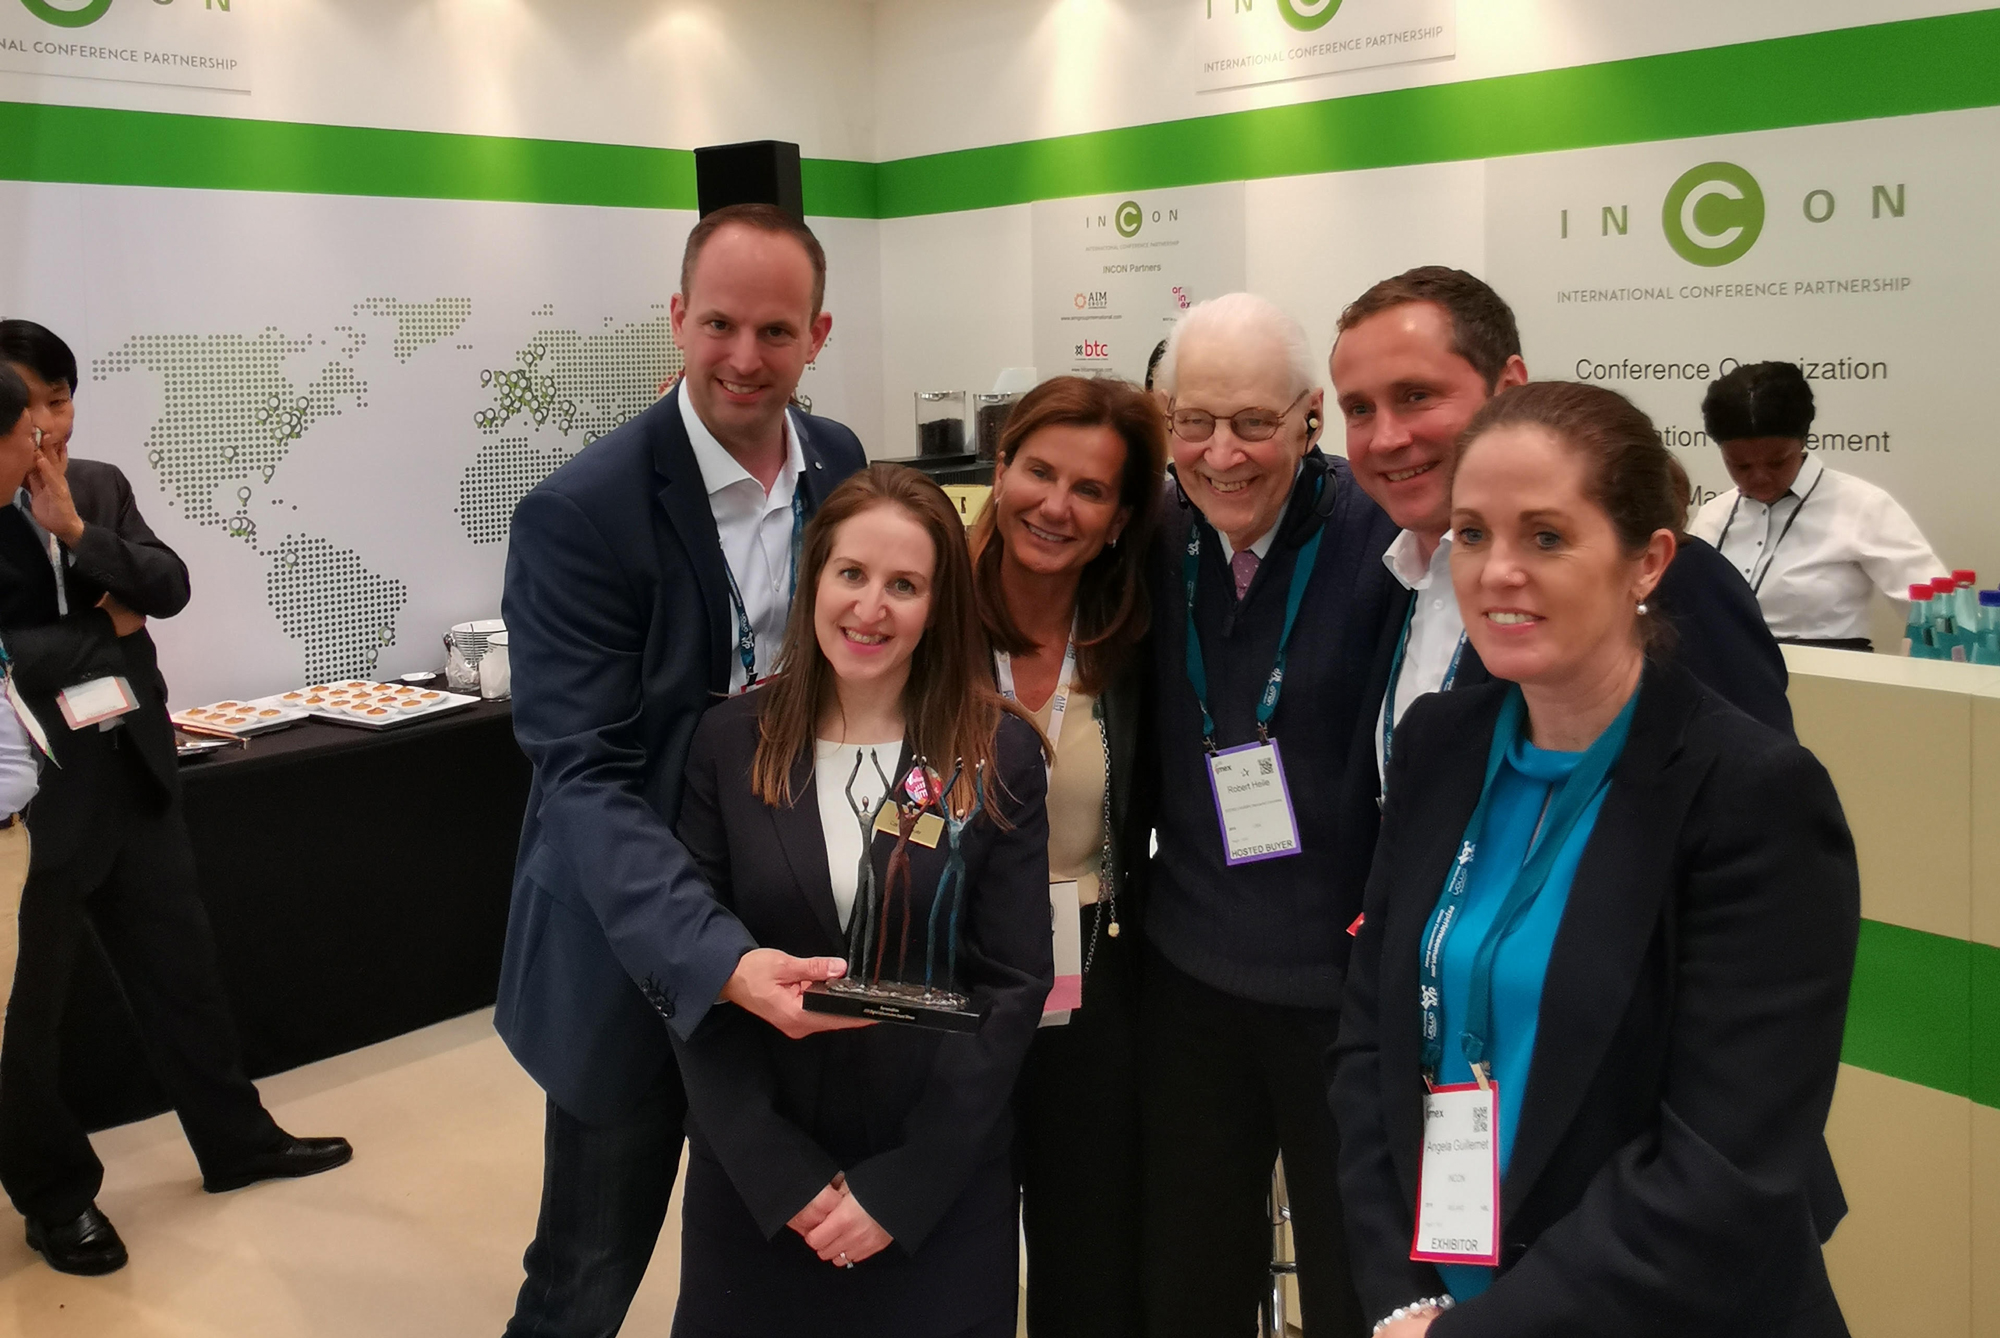 From left to right:  Lars Wöhler,  Managing Director - darmstadtium,  Carina Bauer,  CEO - IMEX Group,  Patrizia Semprebene Buongiorno,  Vice President -   AIM Group International, INCON Co-Chair,  Bob Heile,  INCON Award Judge,  Michael Cordt,  Head of Sales and Maketing- darmstadtium,  Angela Guillemet,  Executive Director - INCON